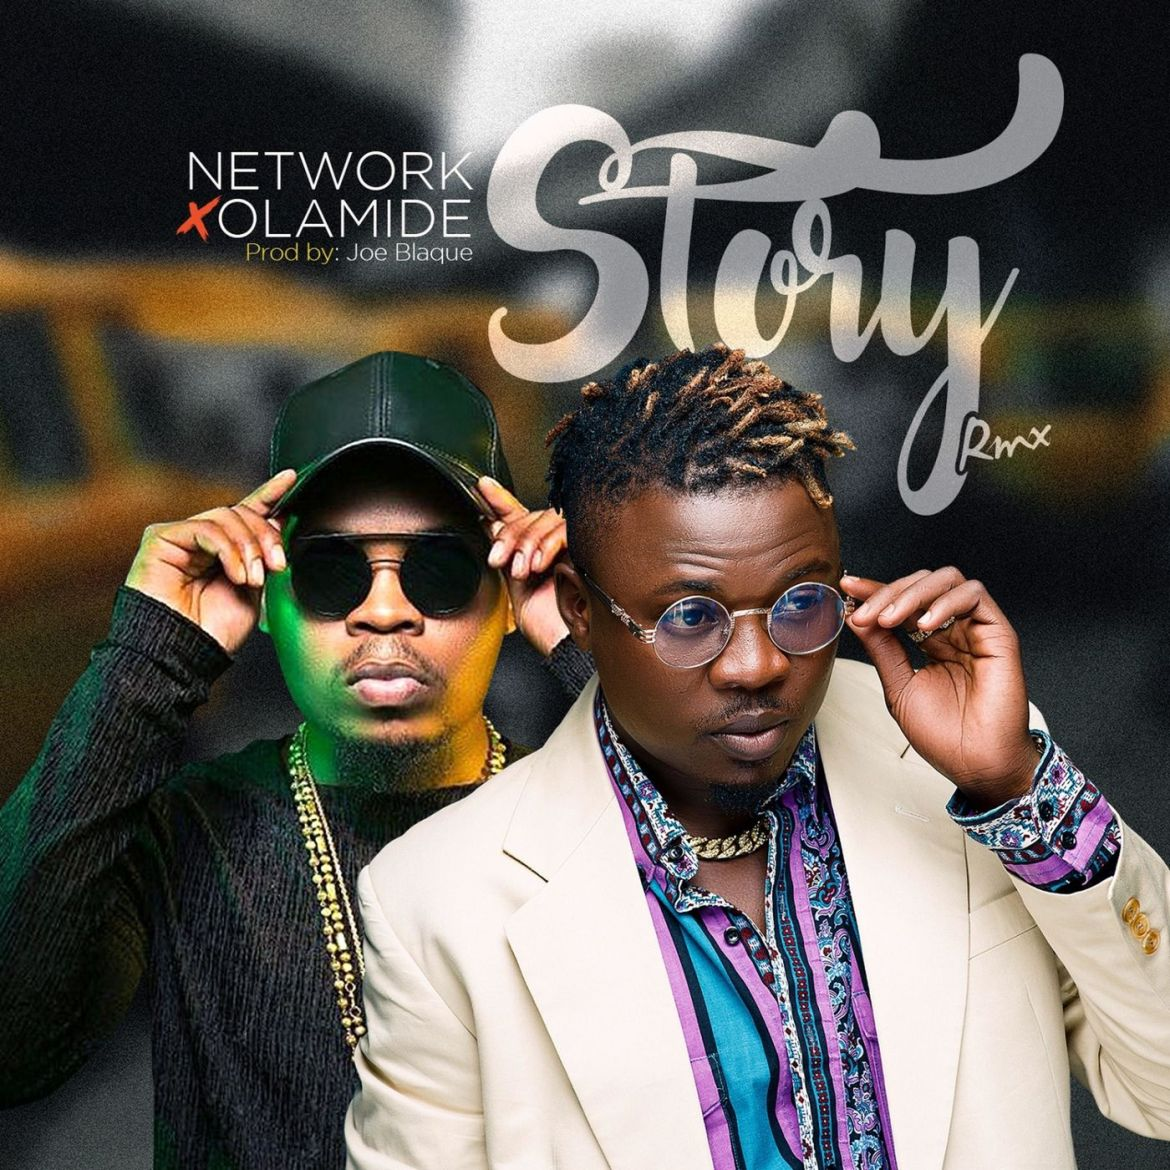 Network ft. Olamide - Story (Remix)